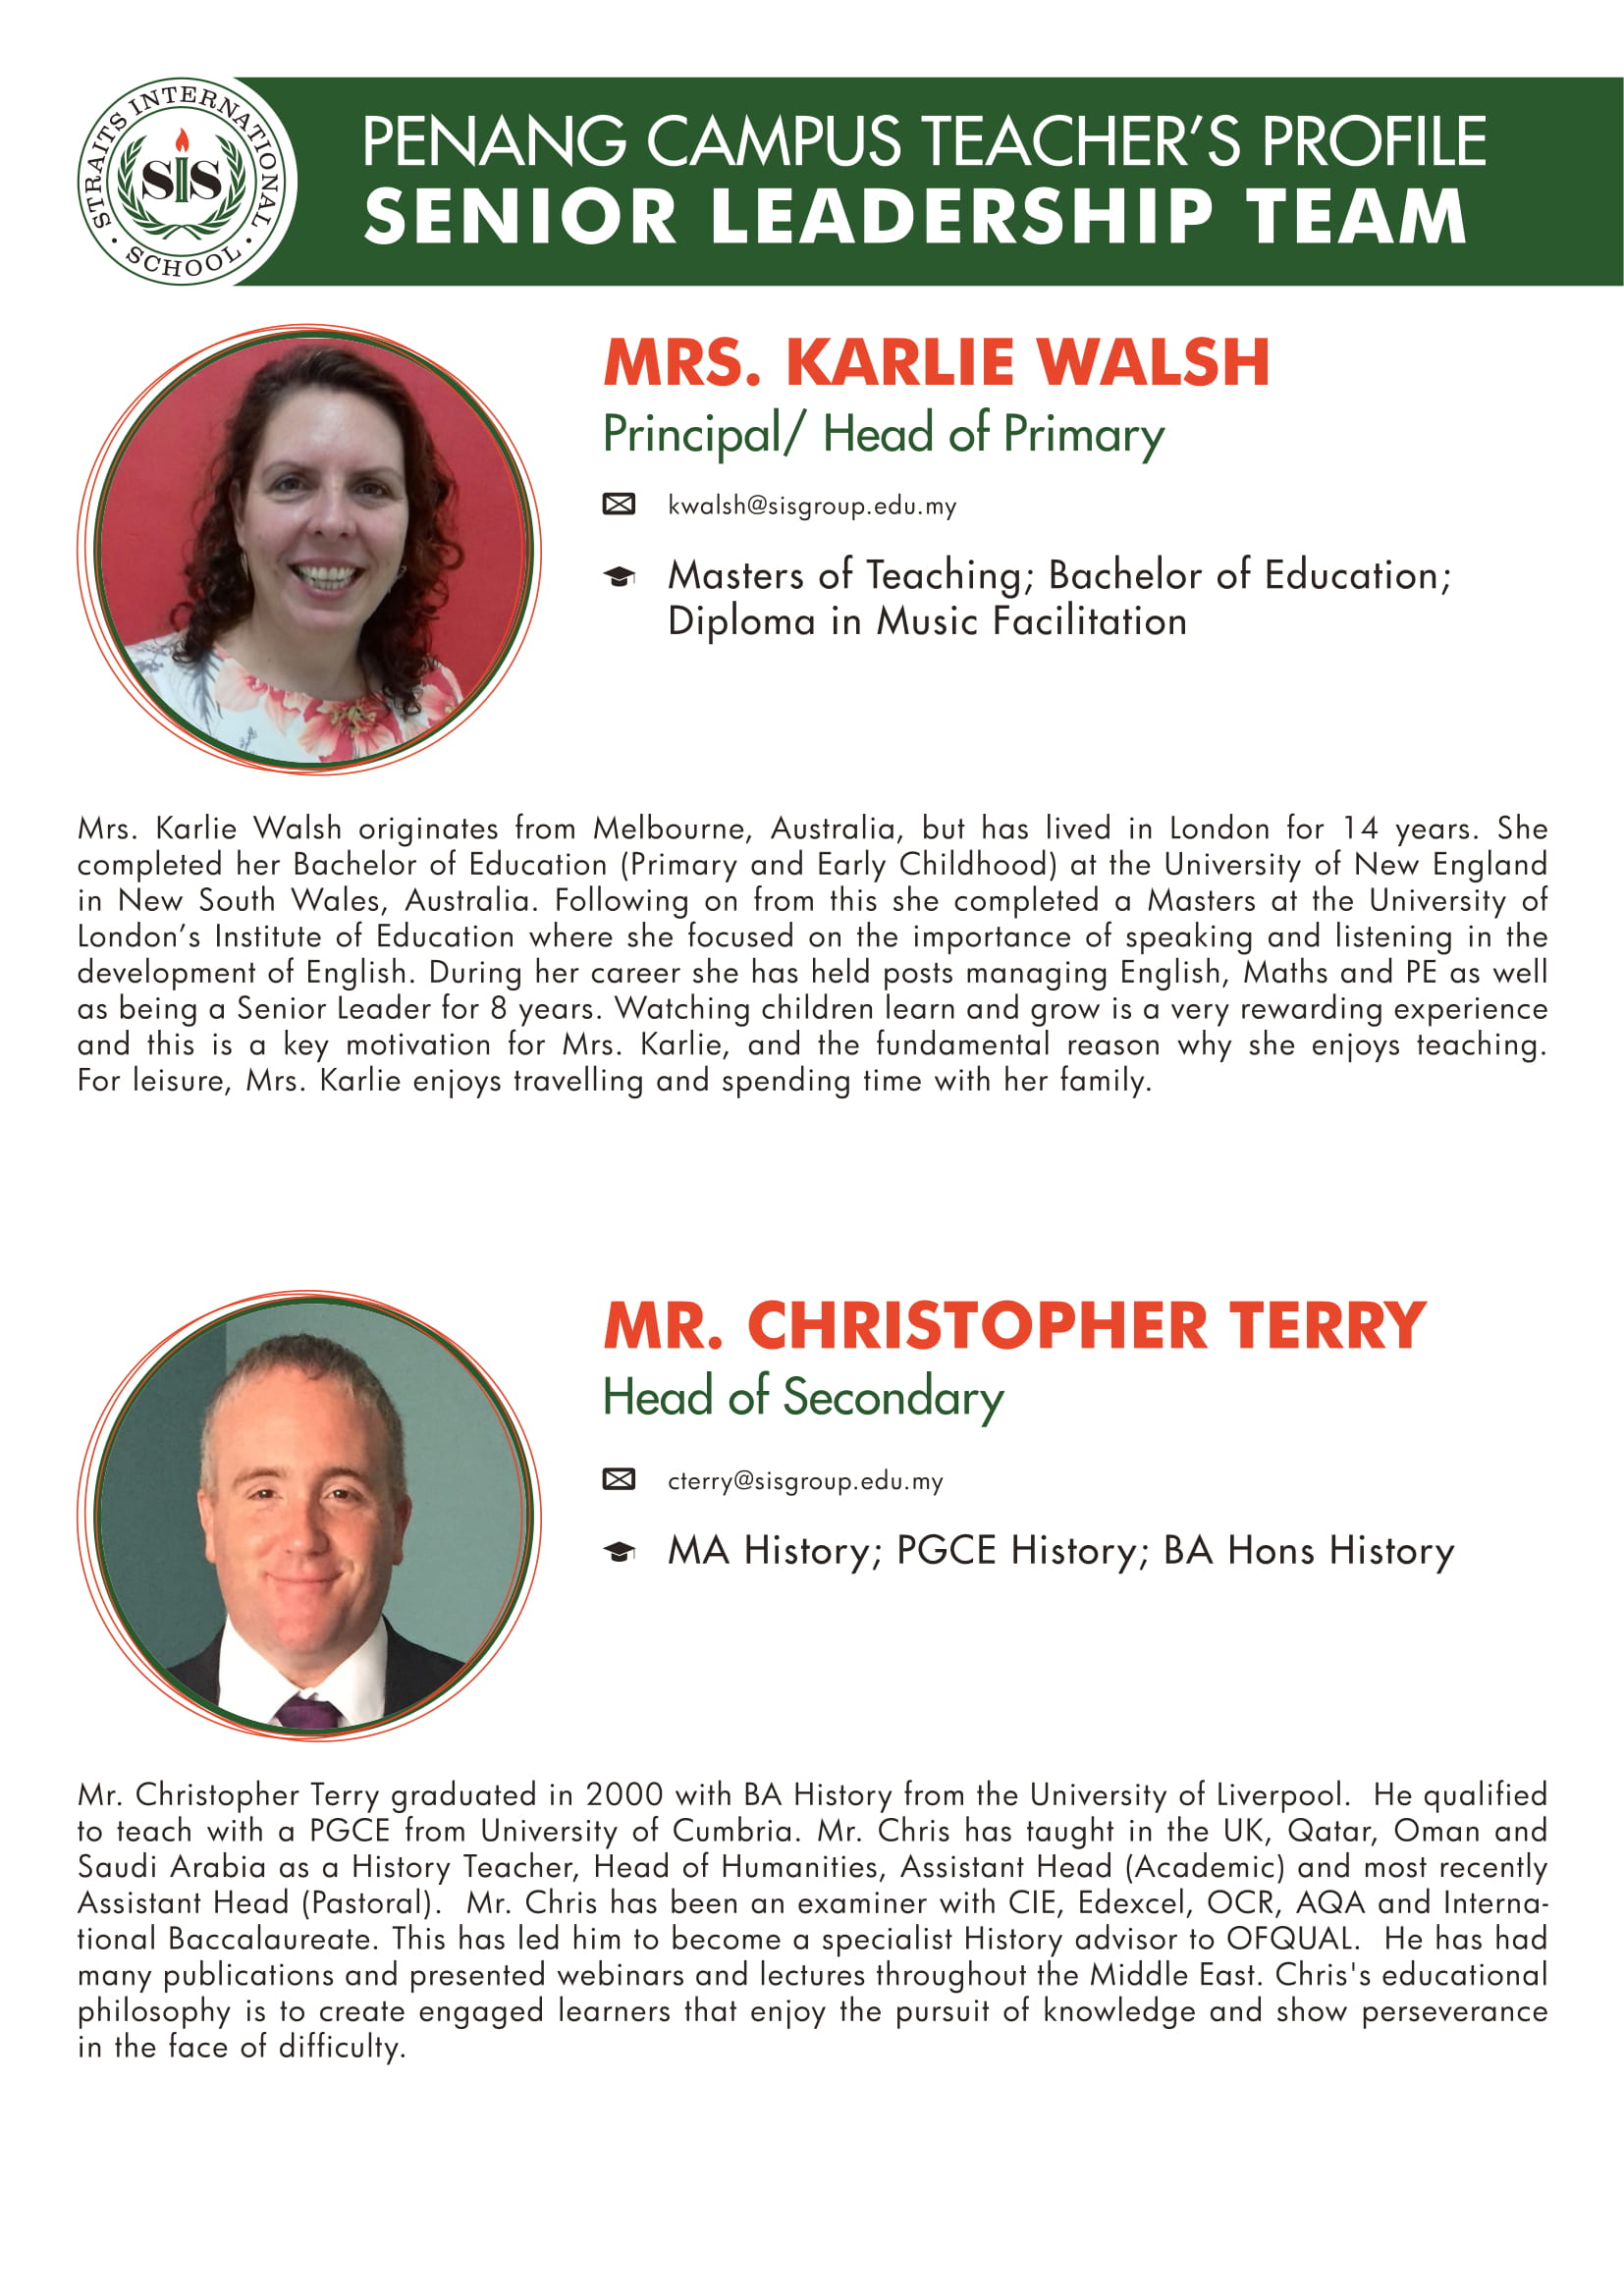 Mrs. Karlie Walsh and Mr. Christopher Terry teacher profile